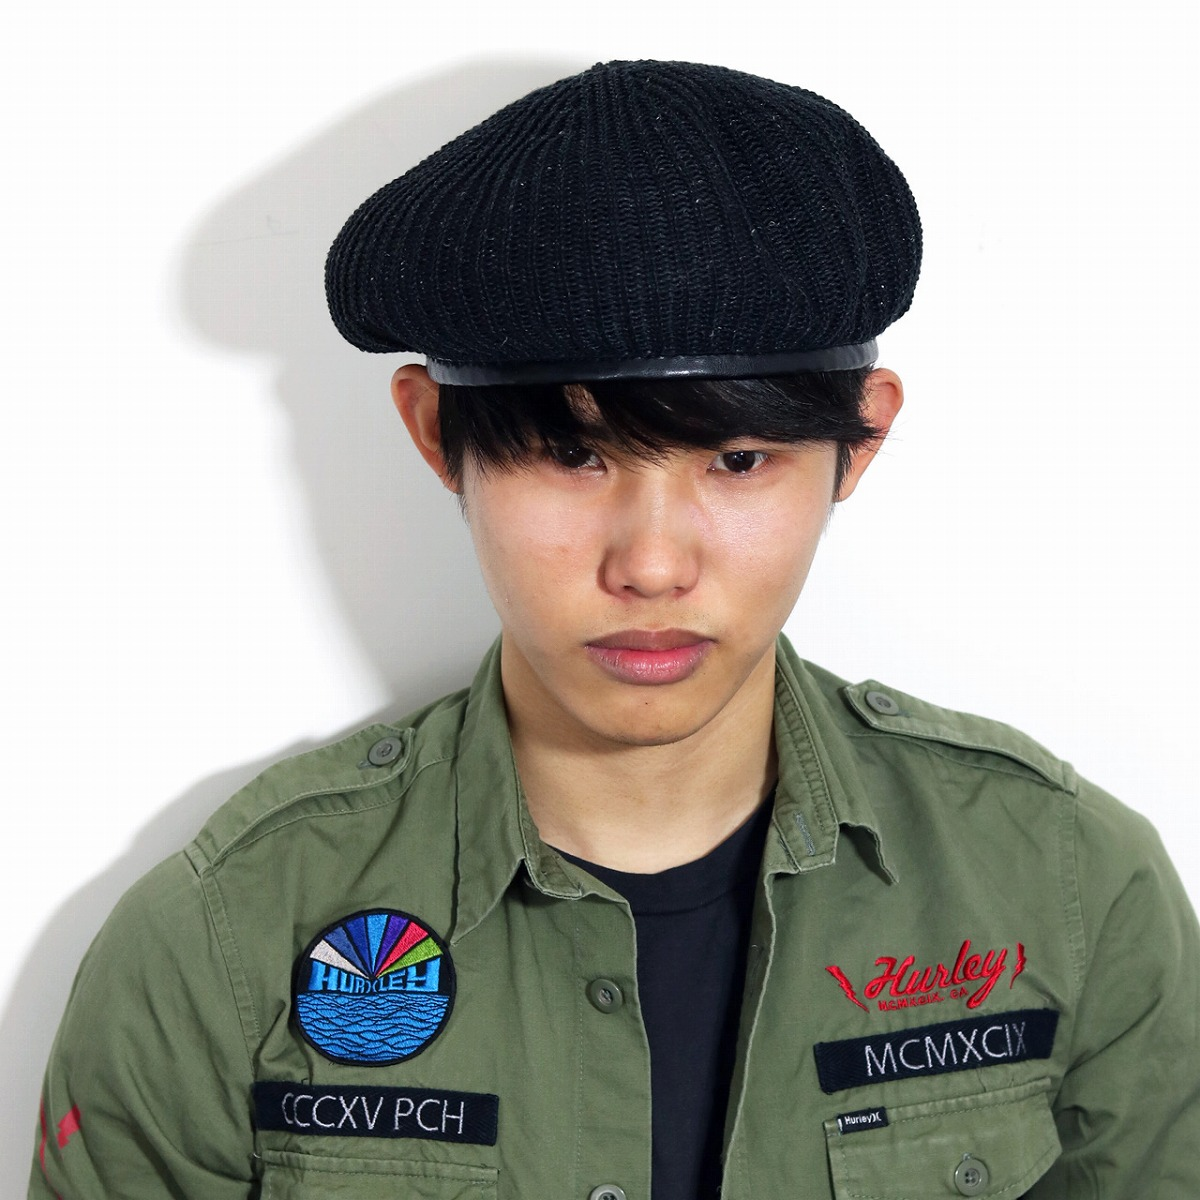 c413f541977 Men s beret summer knit hemp rib army beret hat summer beret Lady s beret  unisex 57.5cm army military beret Monty beret navy dark blue  beret   Father s Day ...